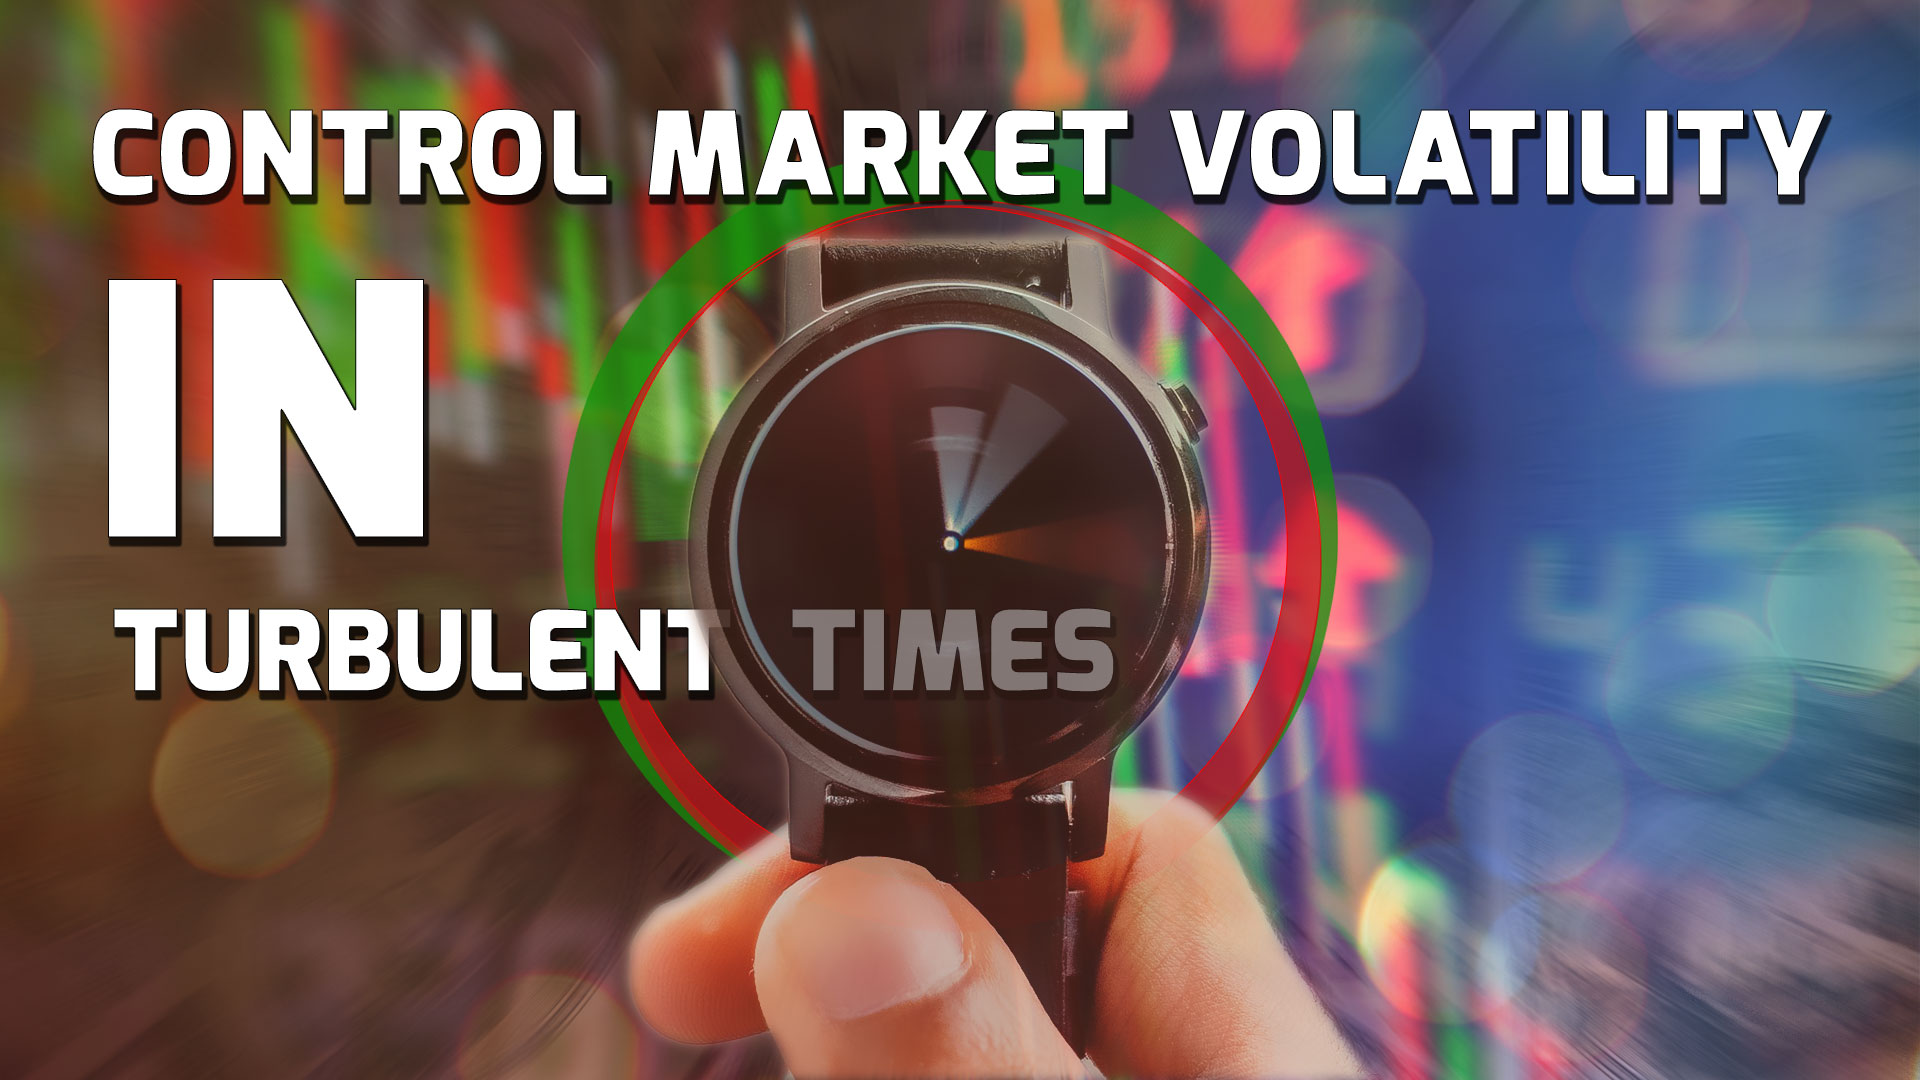 How to control market volatility in turbulent times?